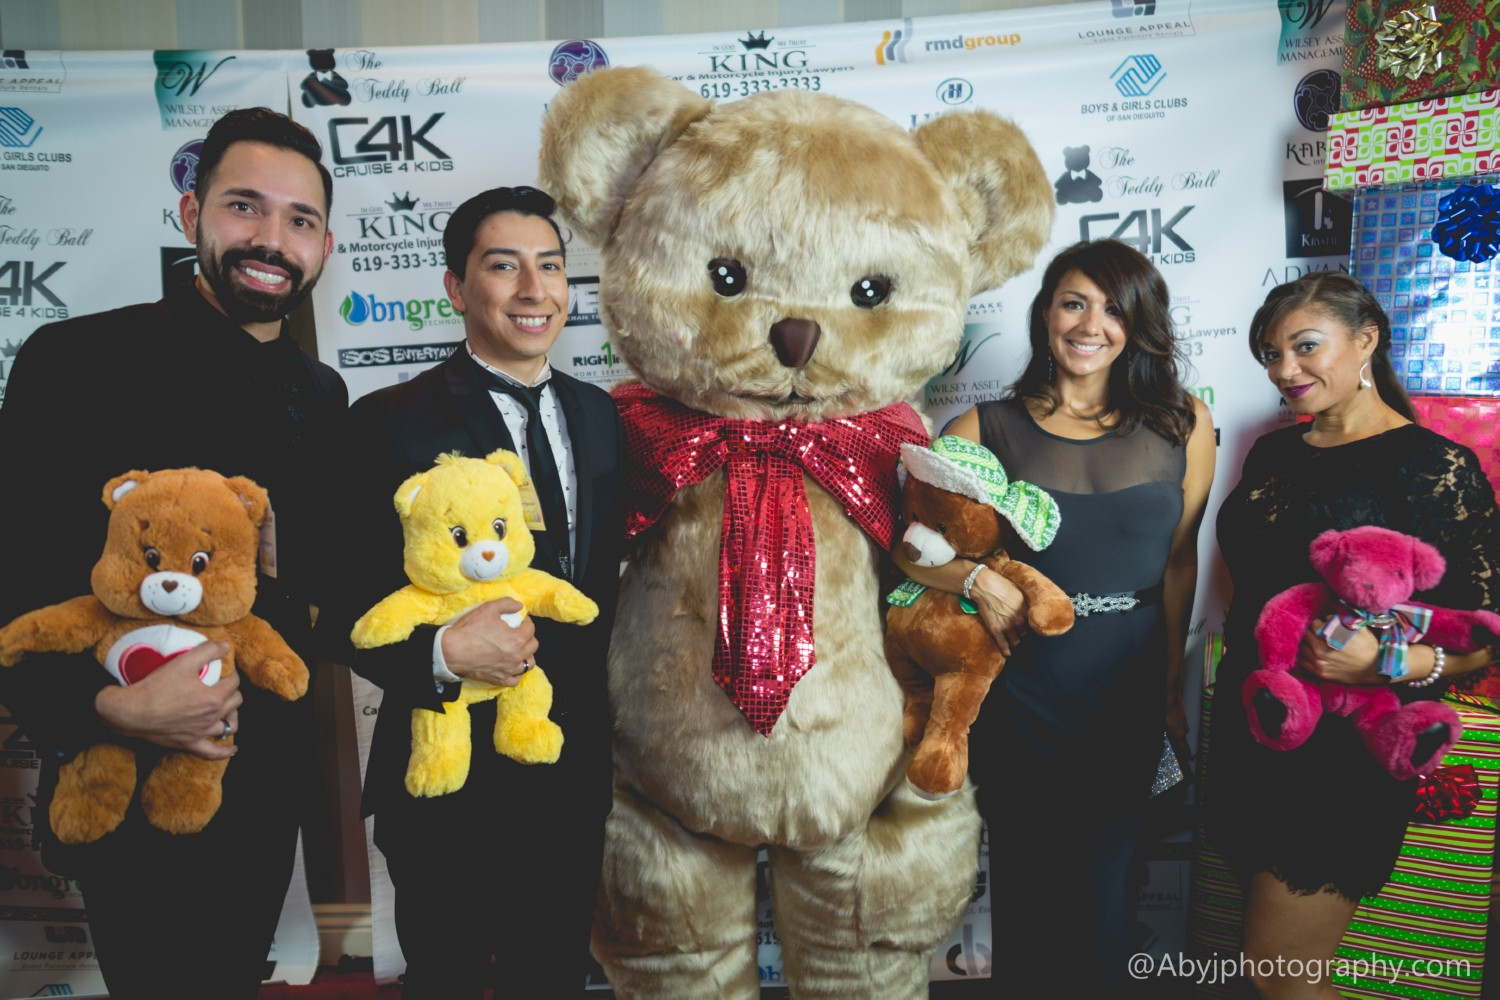 ABYJ_Photography_2016_Teddy_Ball - 170.jpg